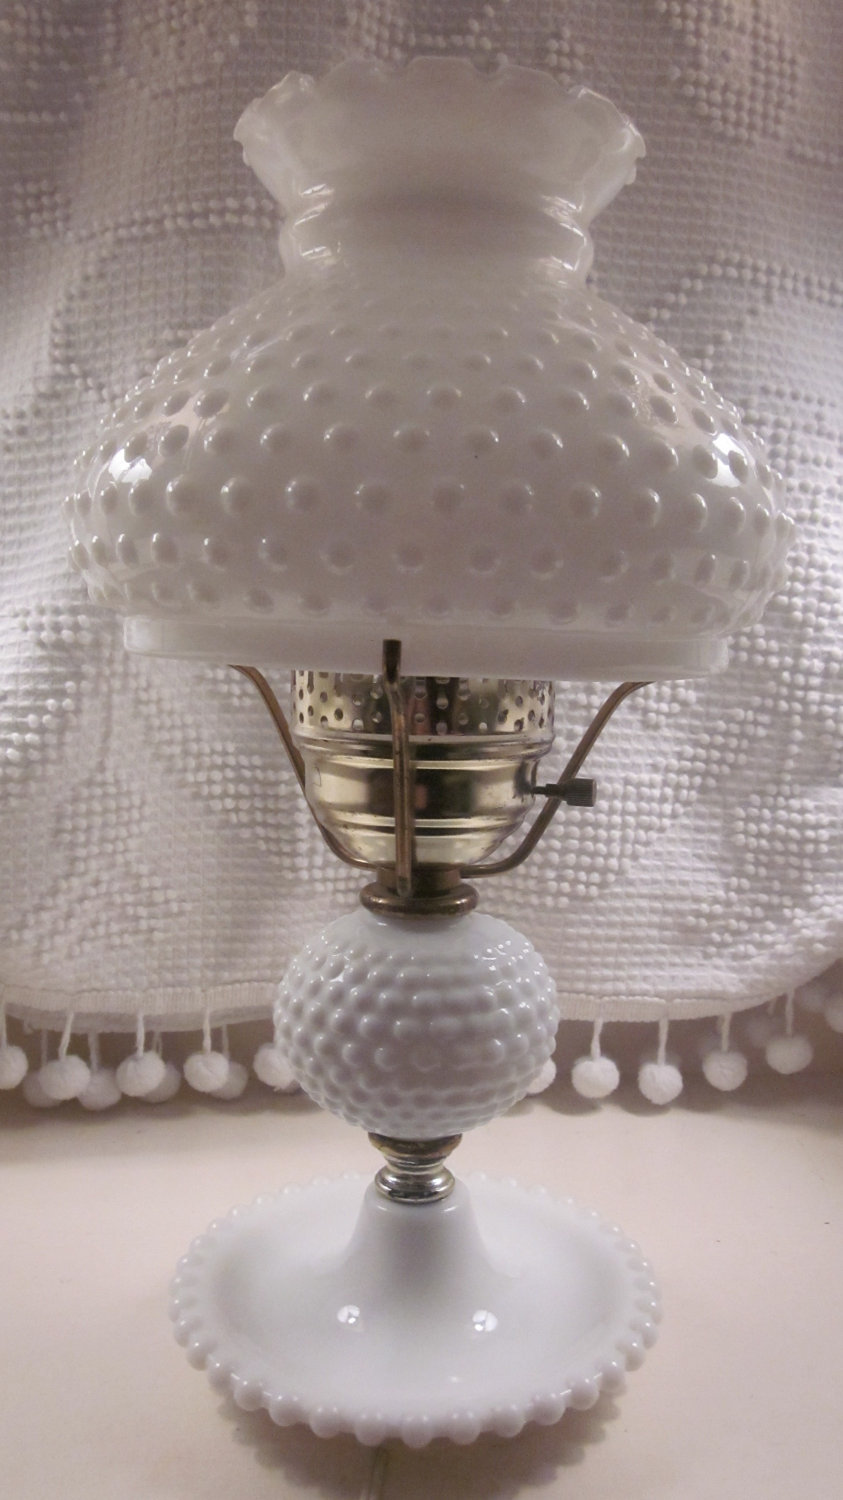 A Quick Online Check Indicated That Hobnail Lamps Are Readily Available At  Reasonable Prices But The Shades Are Extremely Pricey.